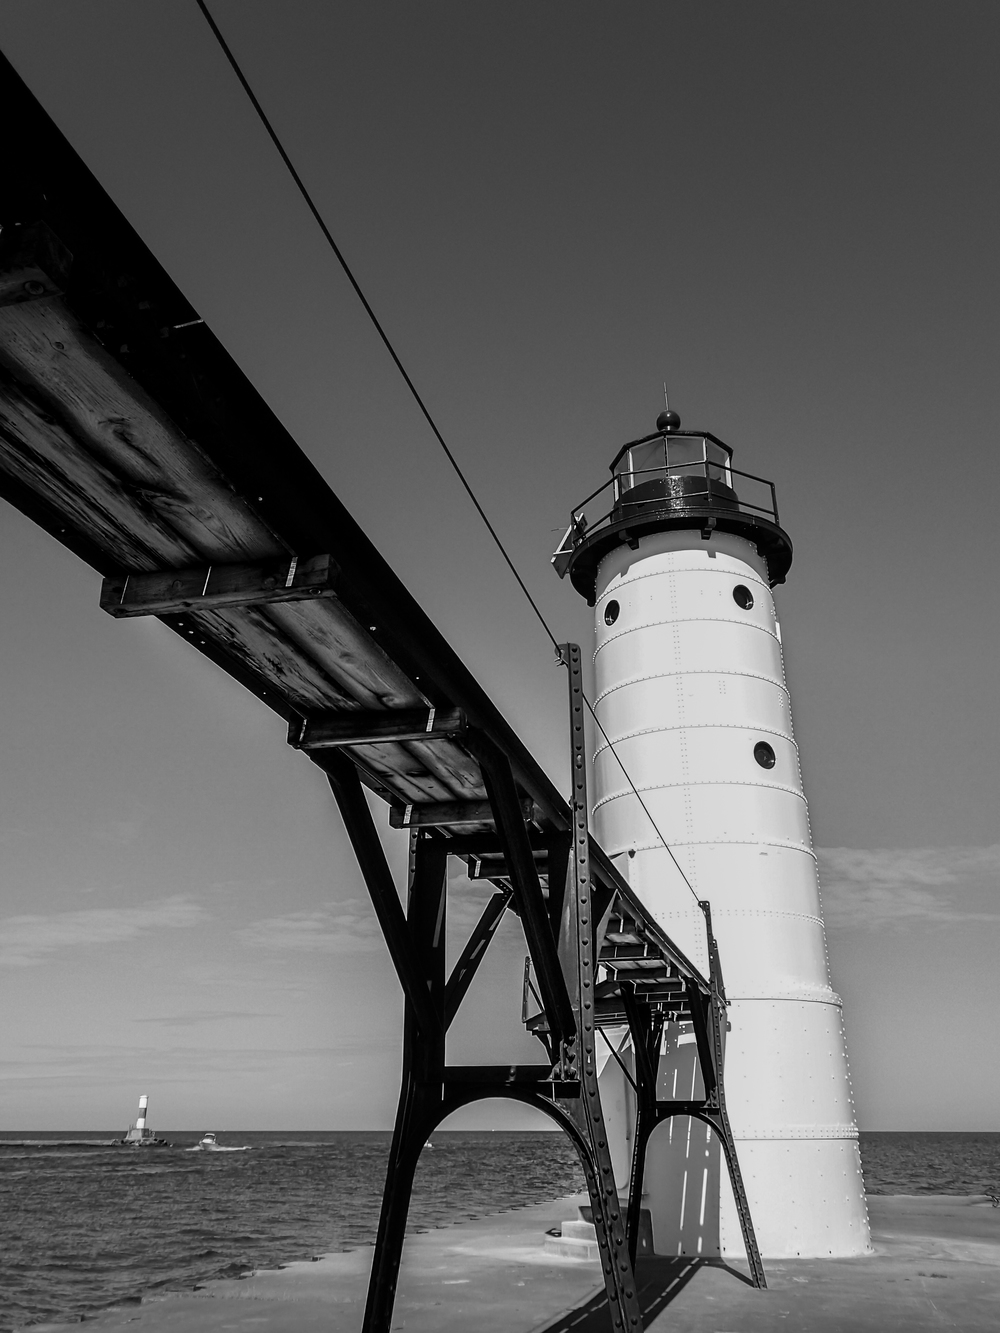 North Pierhead Lighthouse, Taken with Olympus E-M1 and M. Zuiko 12-40mm 2.8